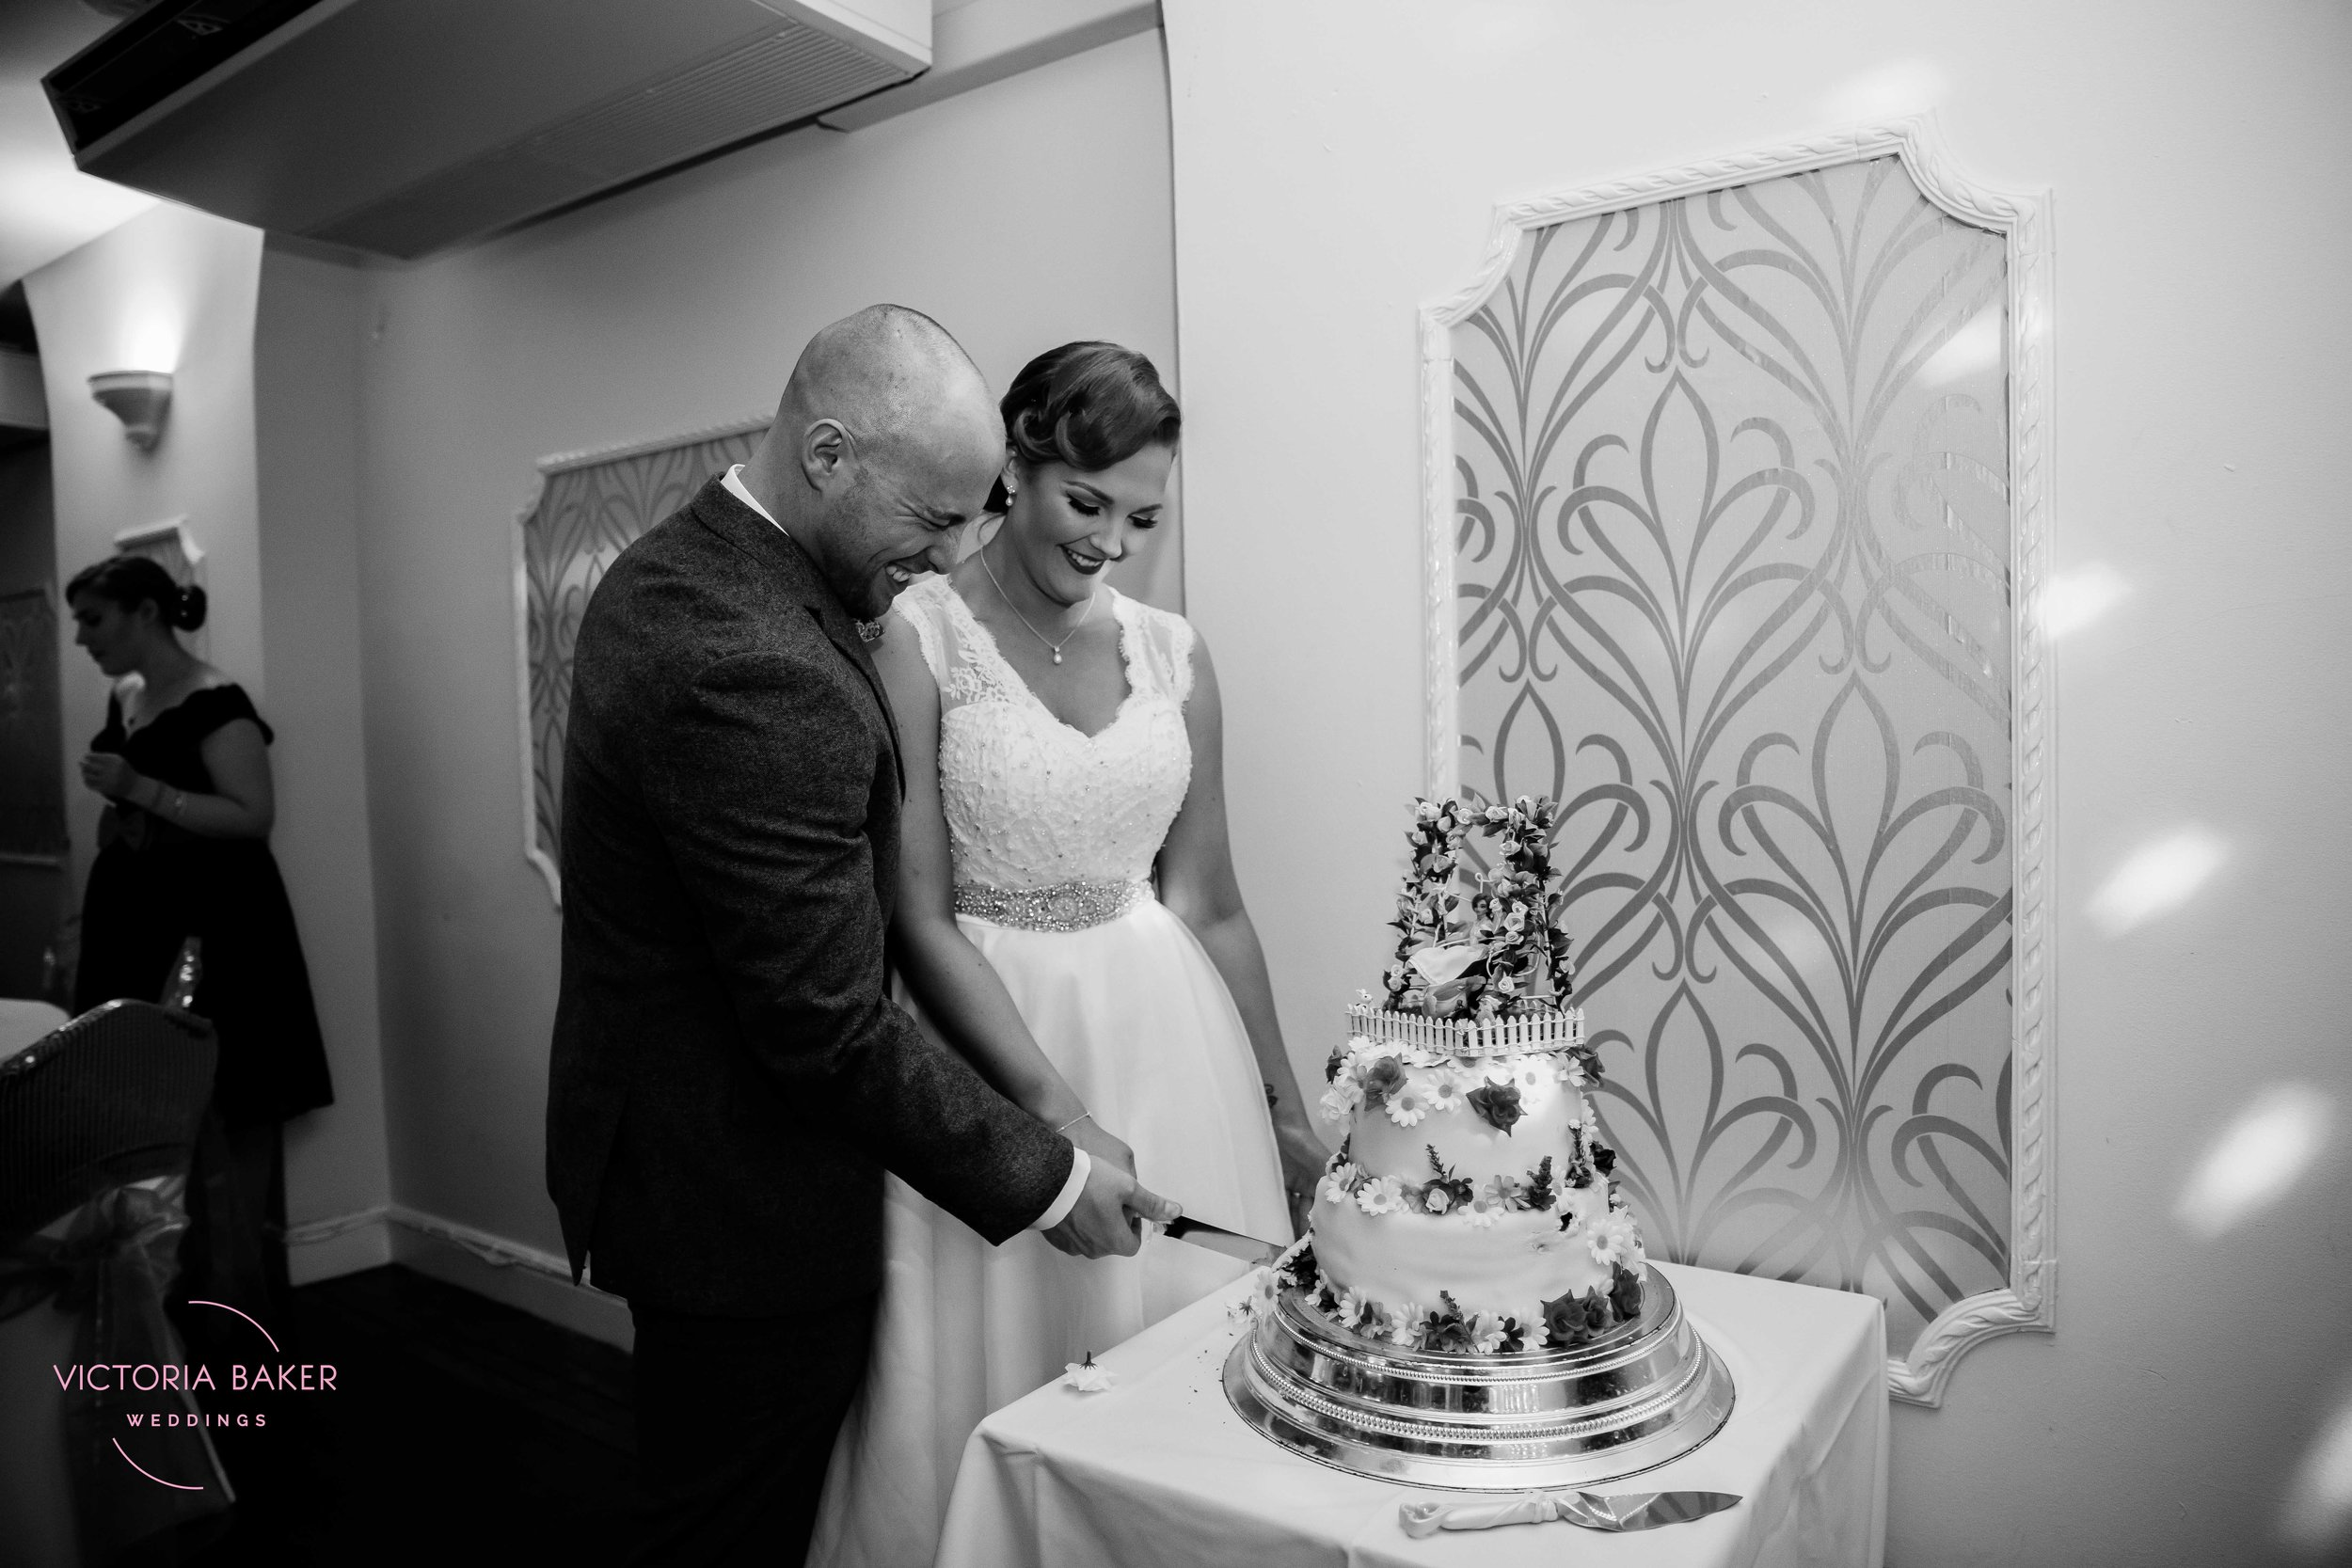 VICTORIABAKERWEDDINGSSam&AnthonySaltburnWedding-499.jpg